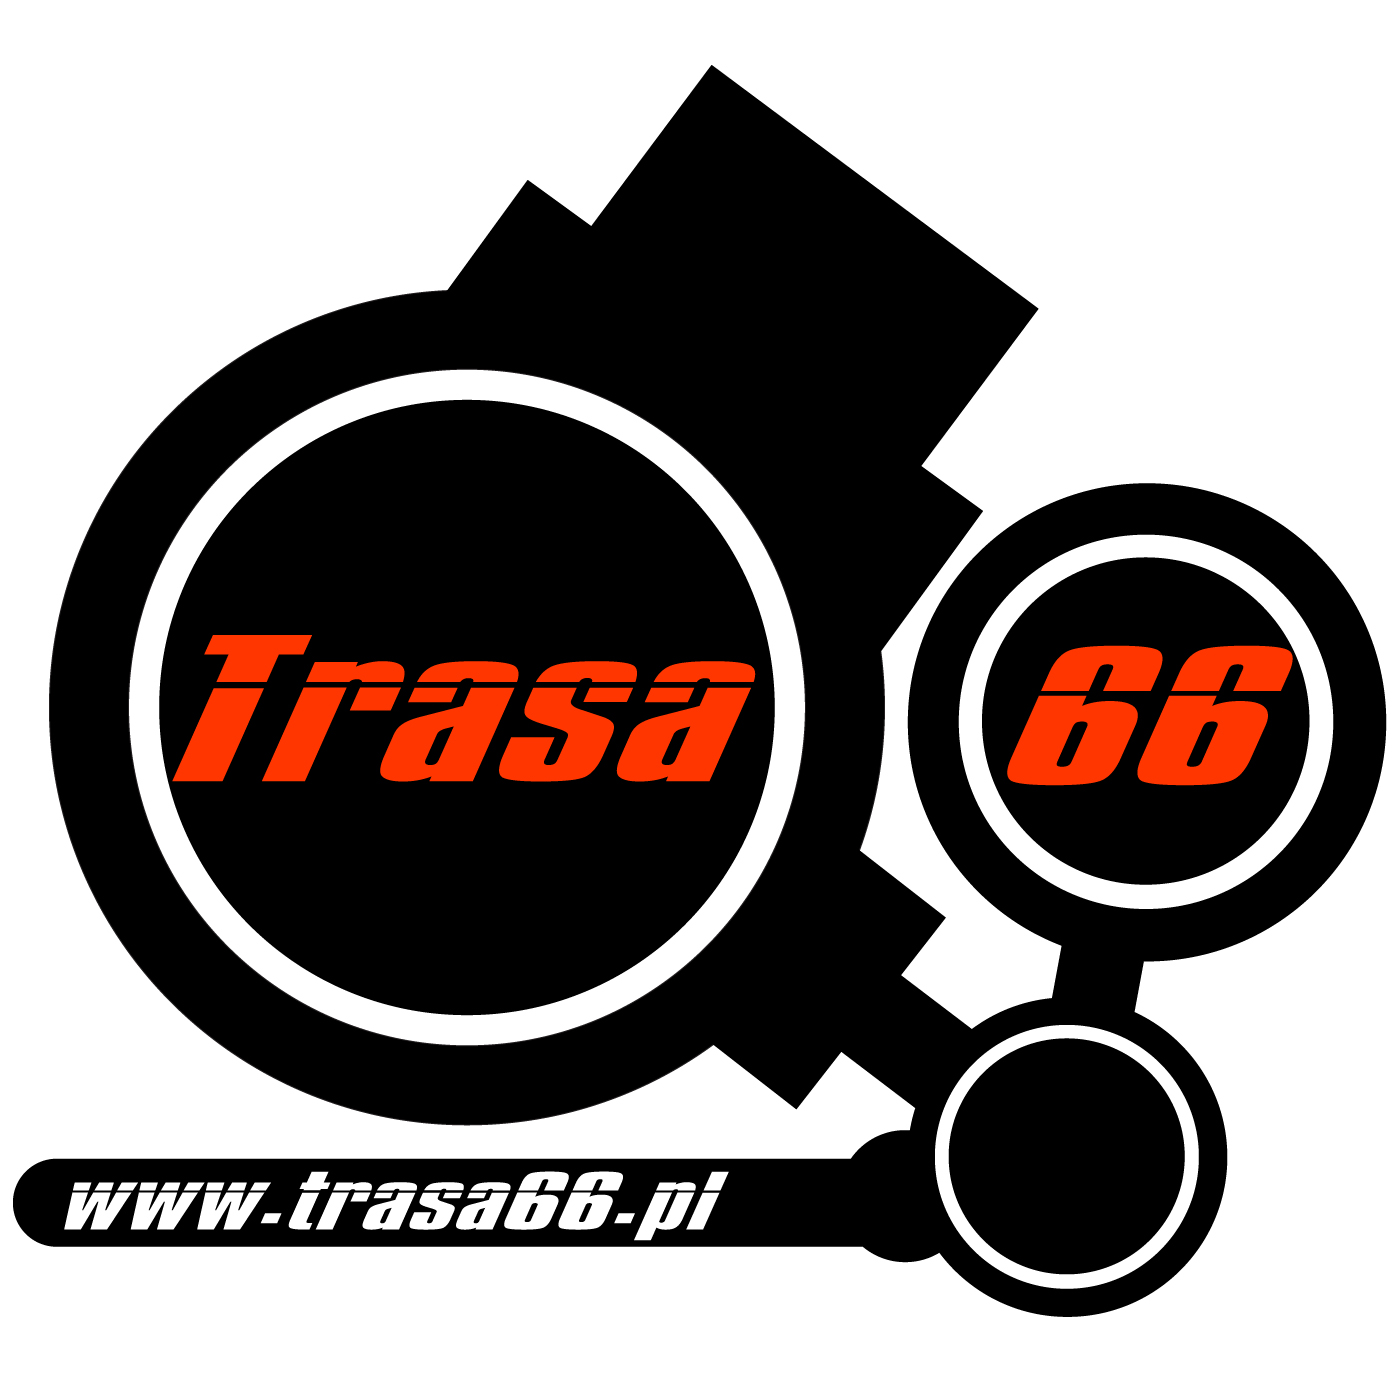 metal, post-metal, nu-metal, hardcore, industrial by Trasa 66